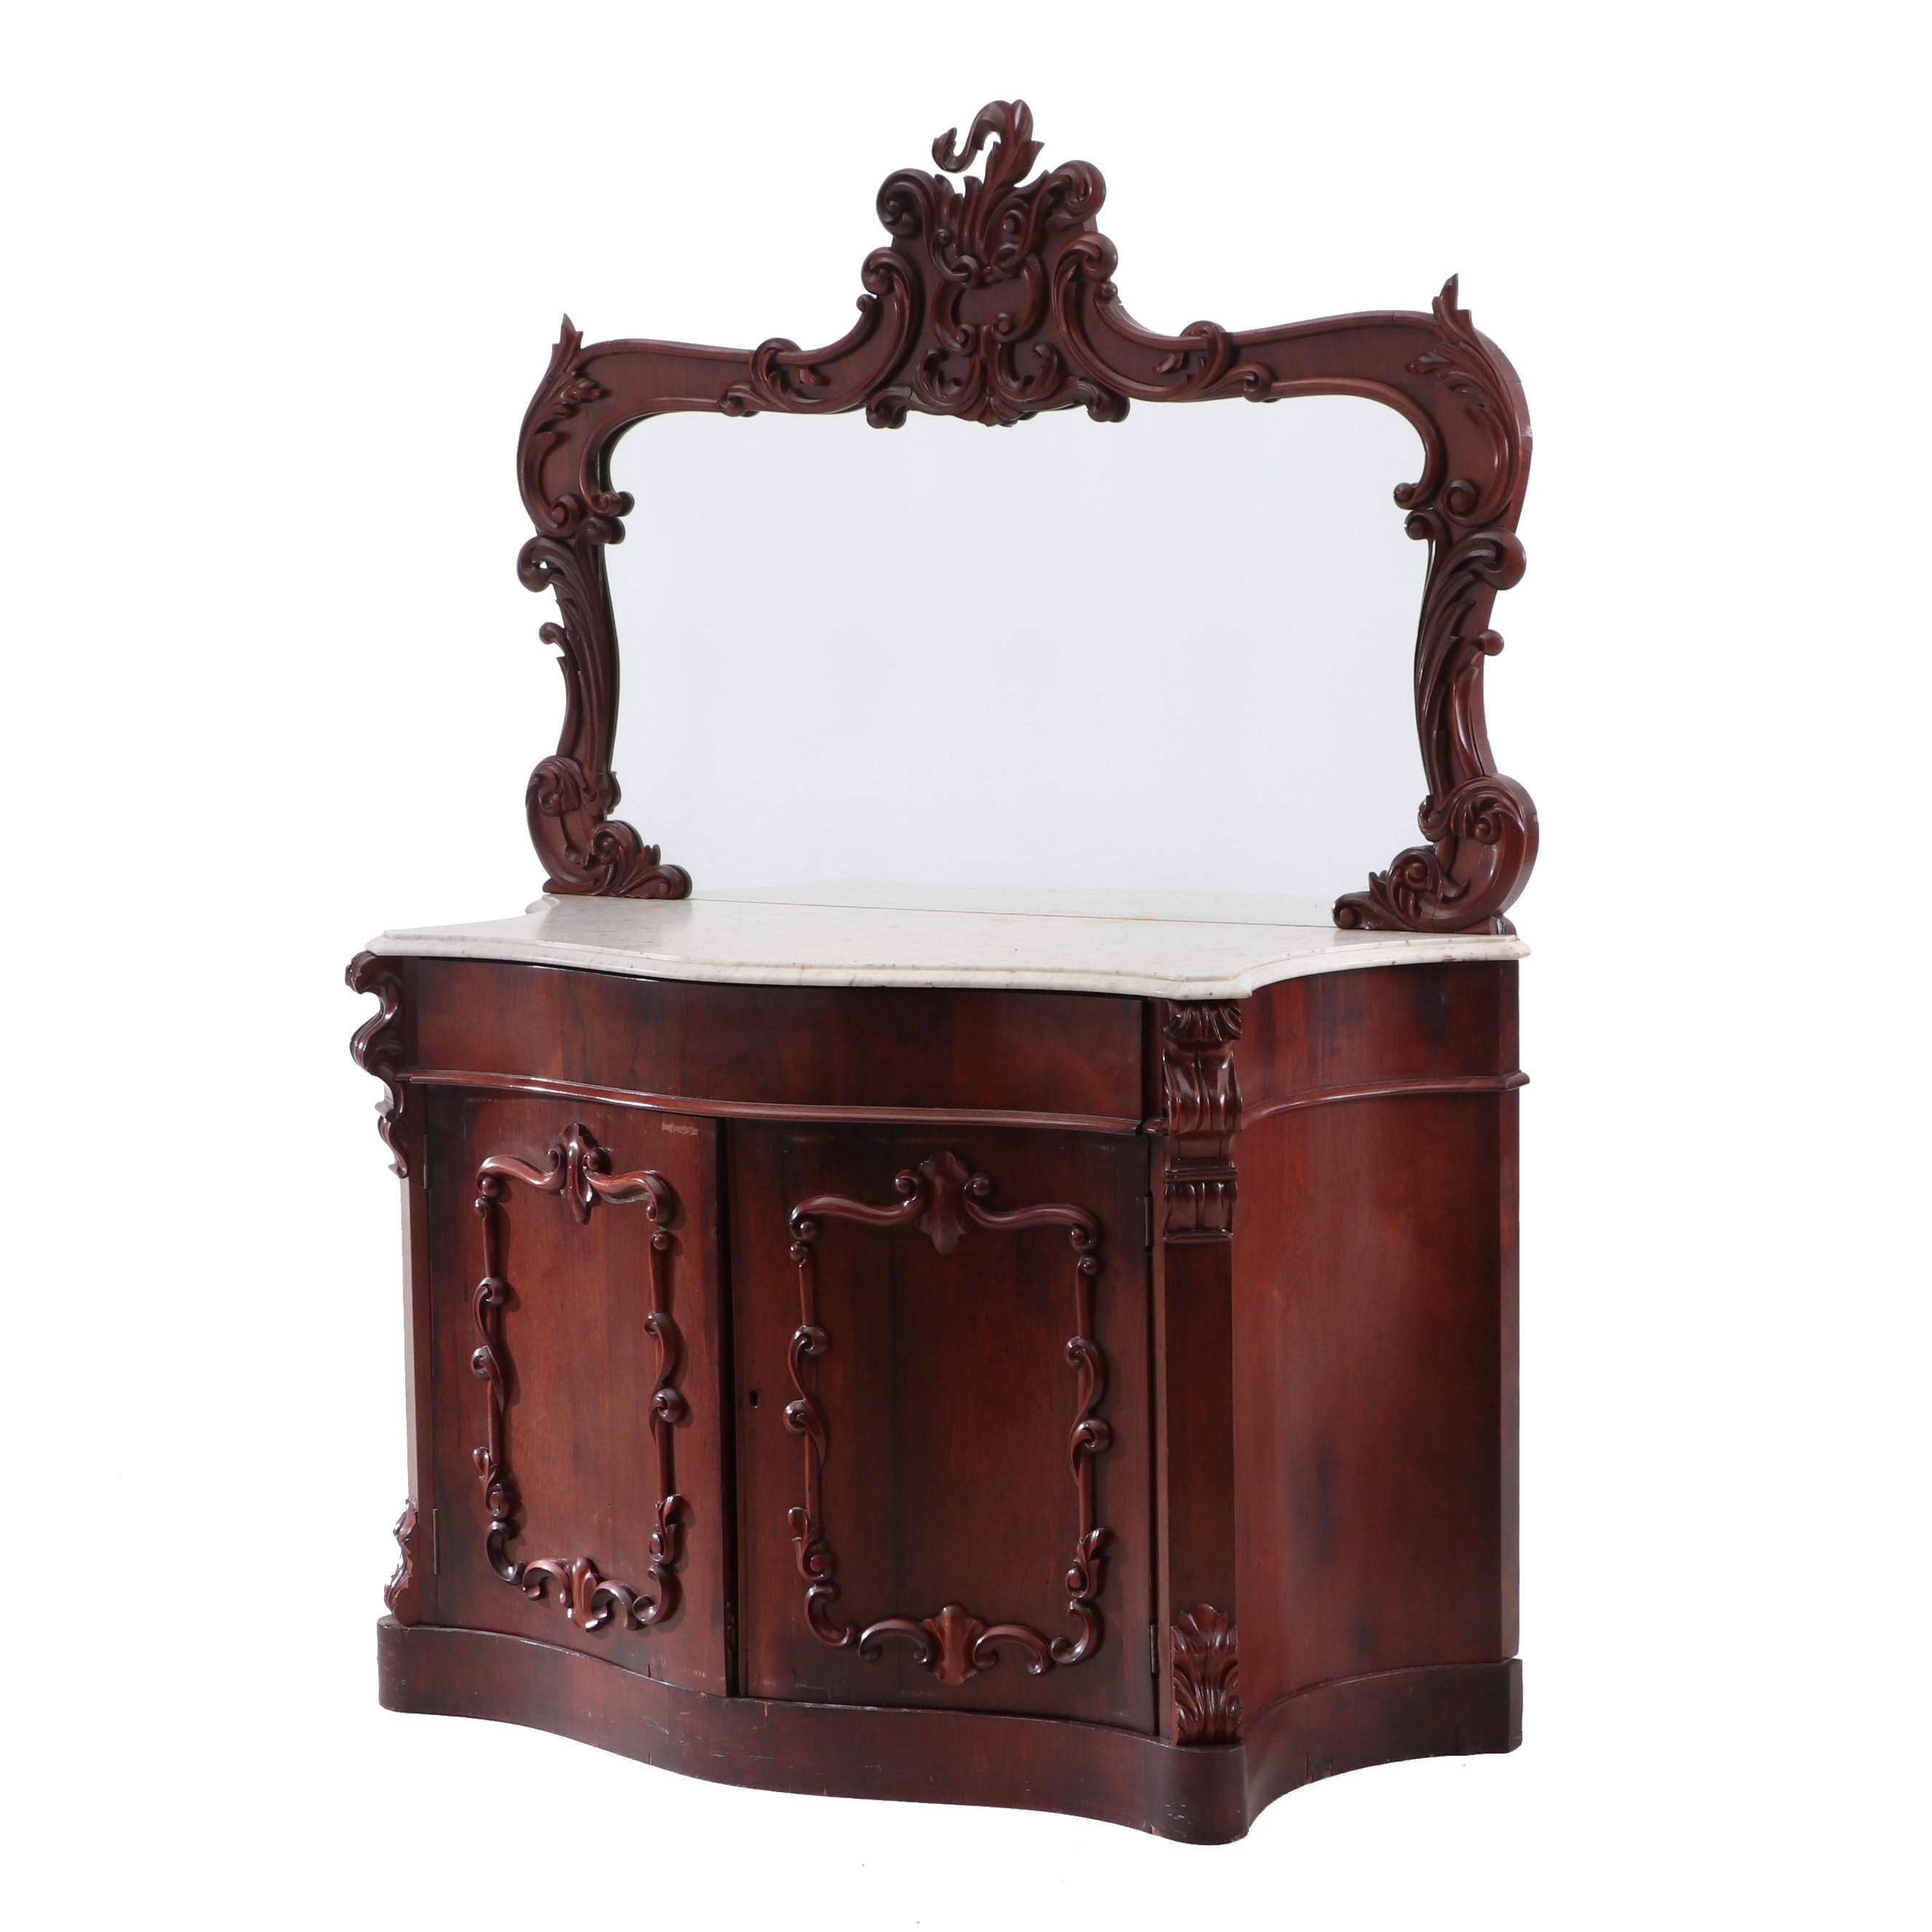 Victorian Mahogany Sideboard with Marble Top and Mirror, Circa 1860